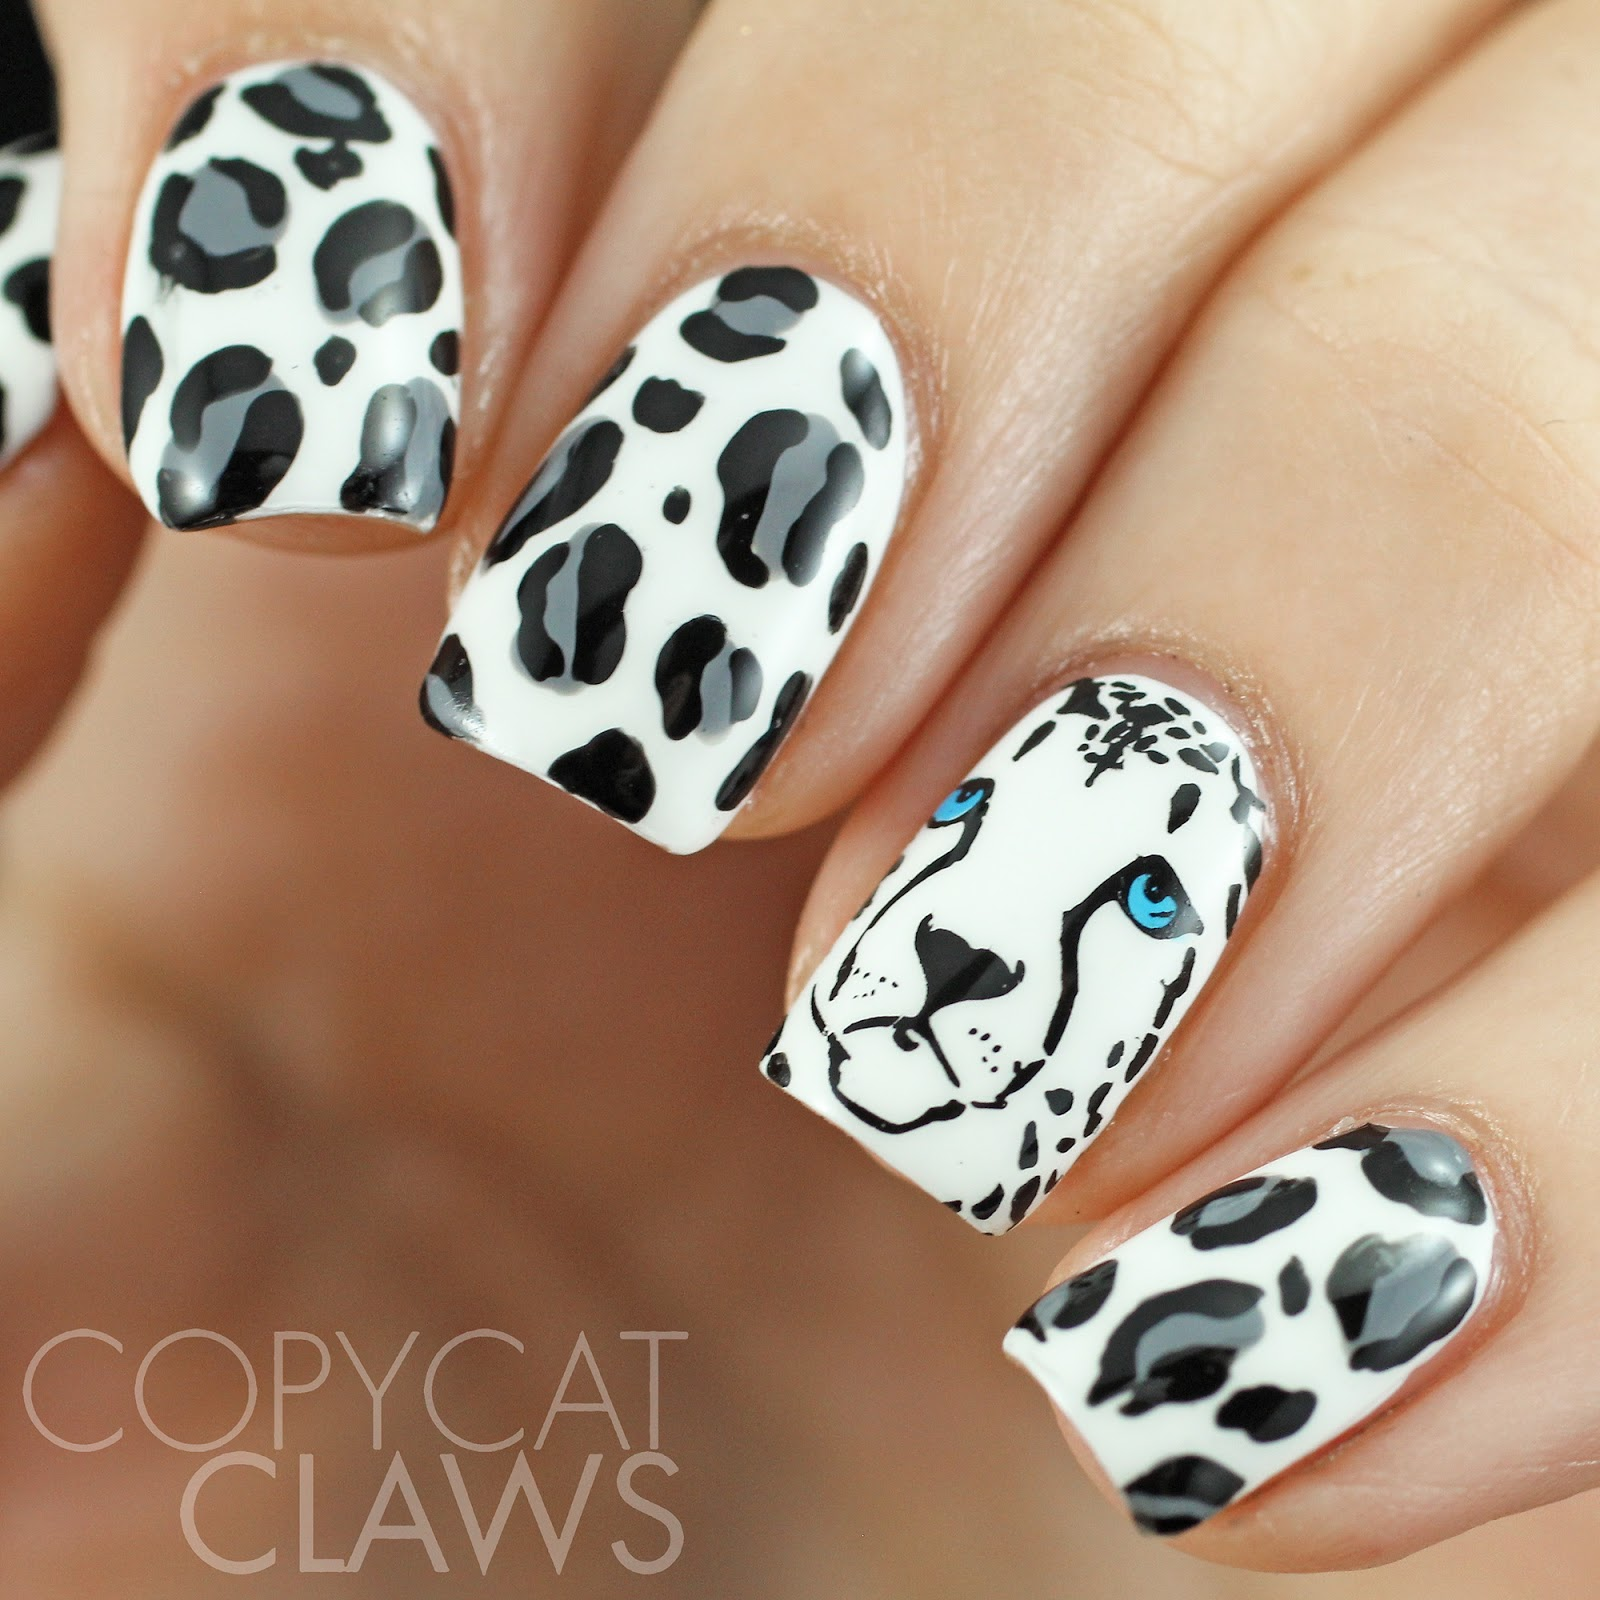 Copycat claws 40 great nail art ideas black white prinsesfo Images